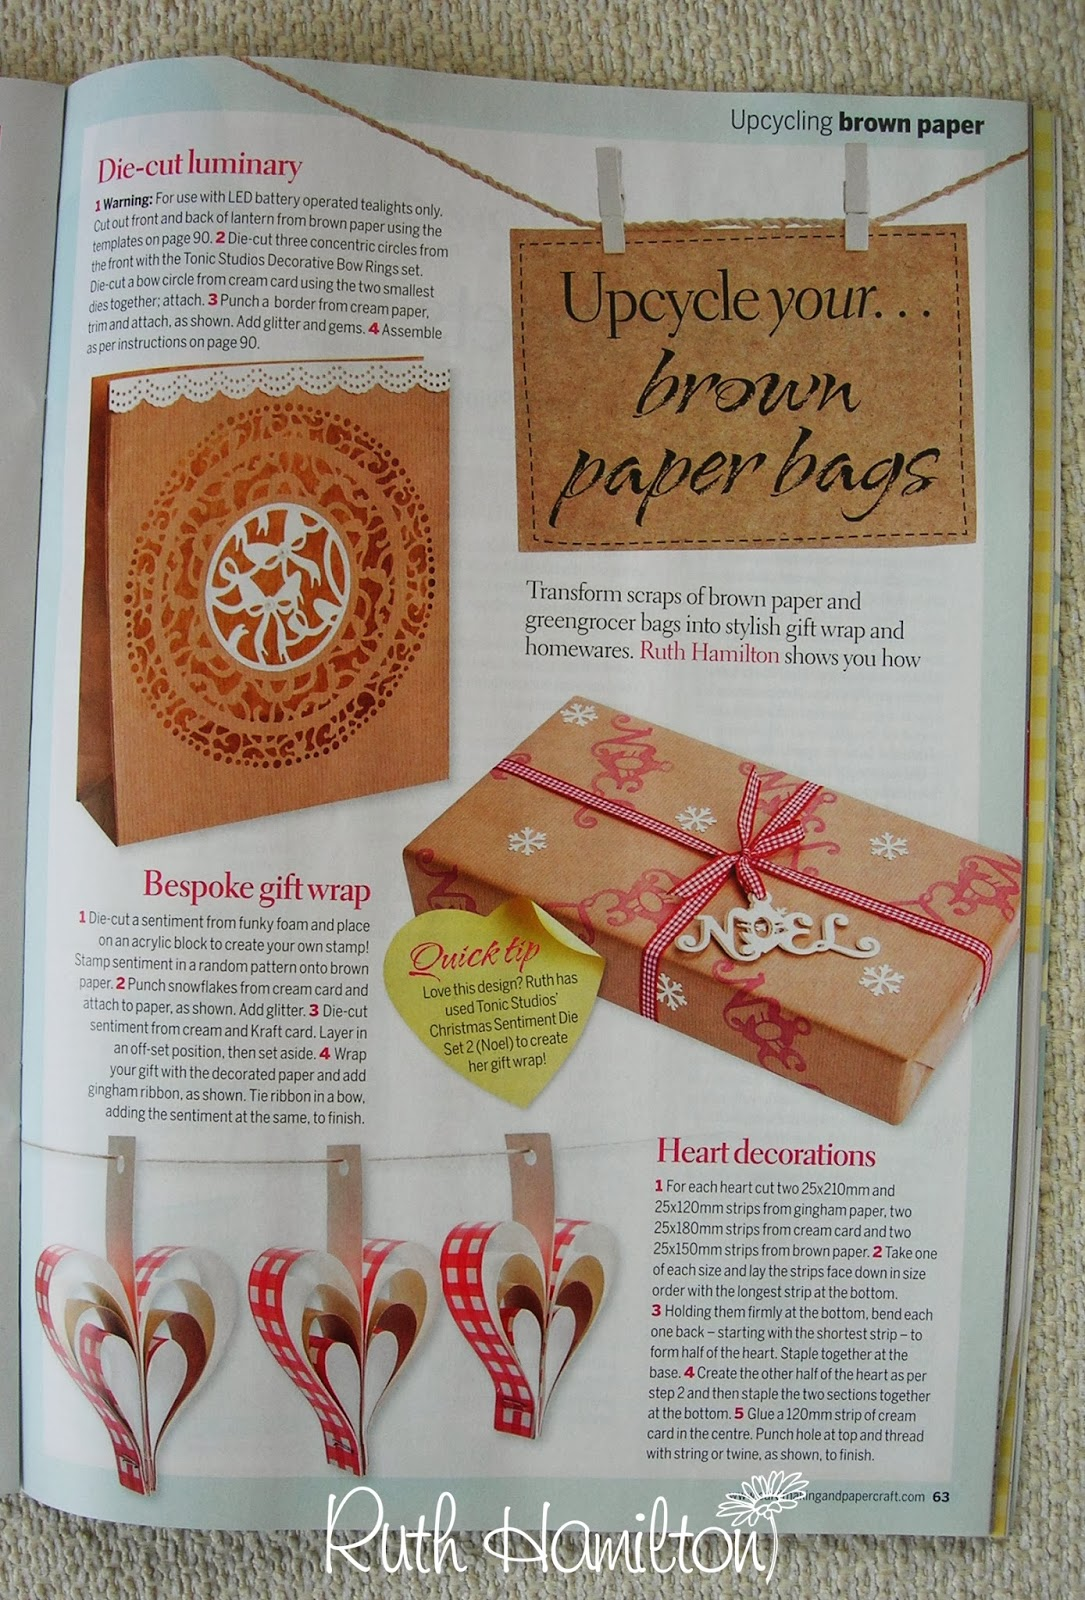 A Passion For Cards: Cardmaking and Papercraft mag December issue